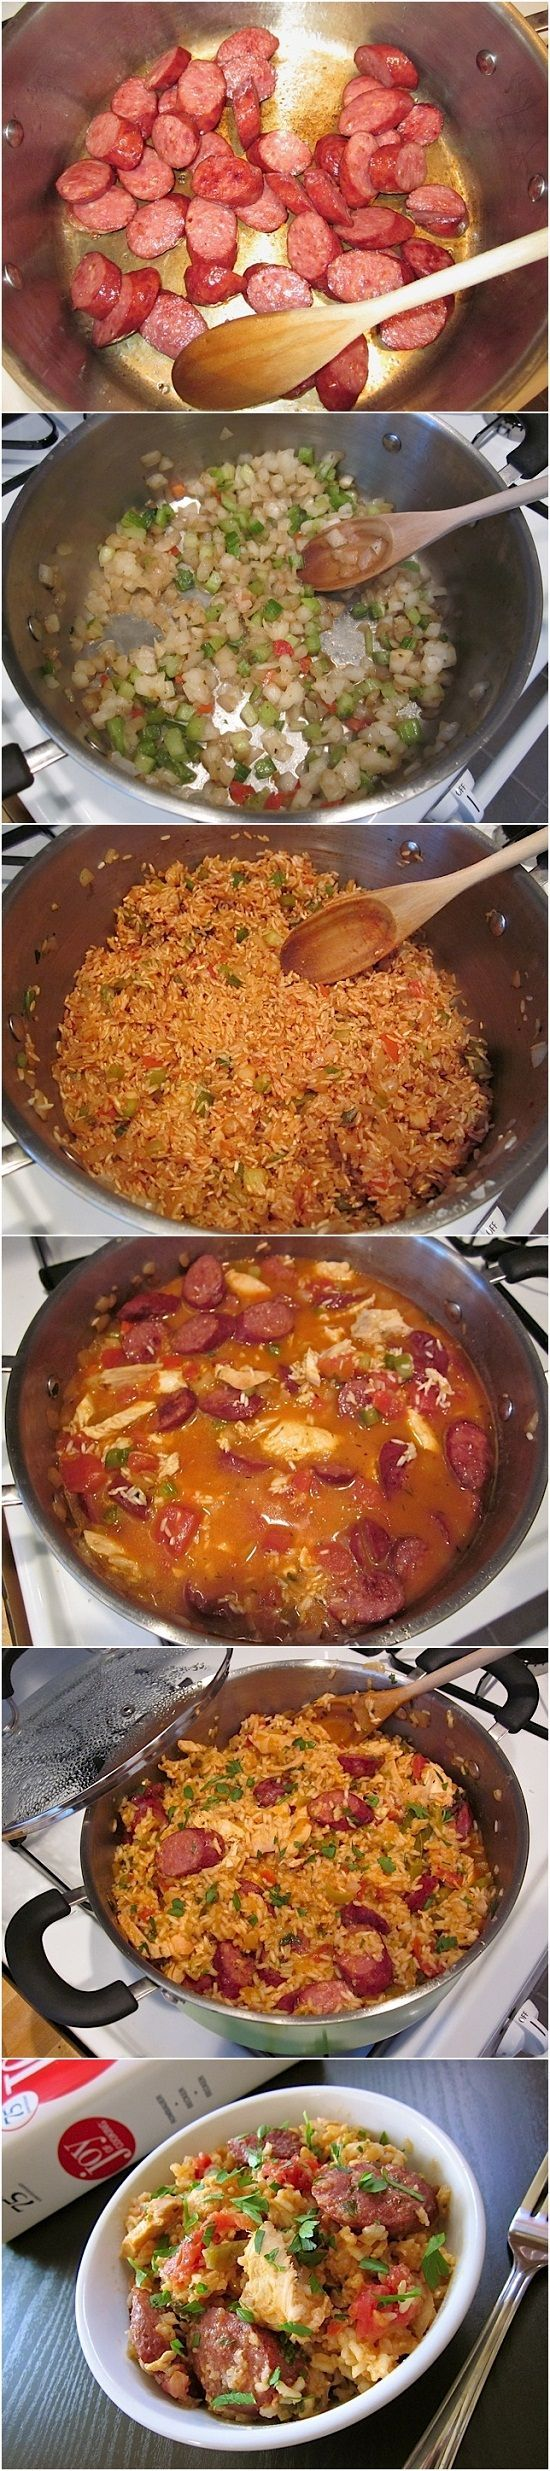 WOW is this ever good! The best Jambalaya Rice Bowl recipe hands down ~~ If you like Cajun spicy you will like this.